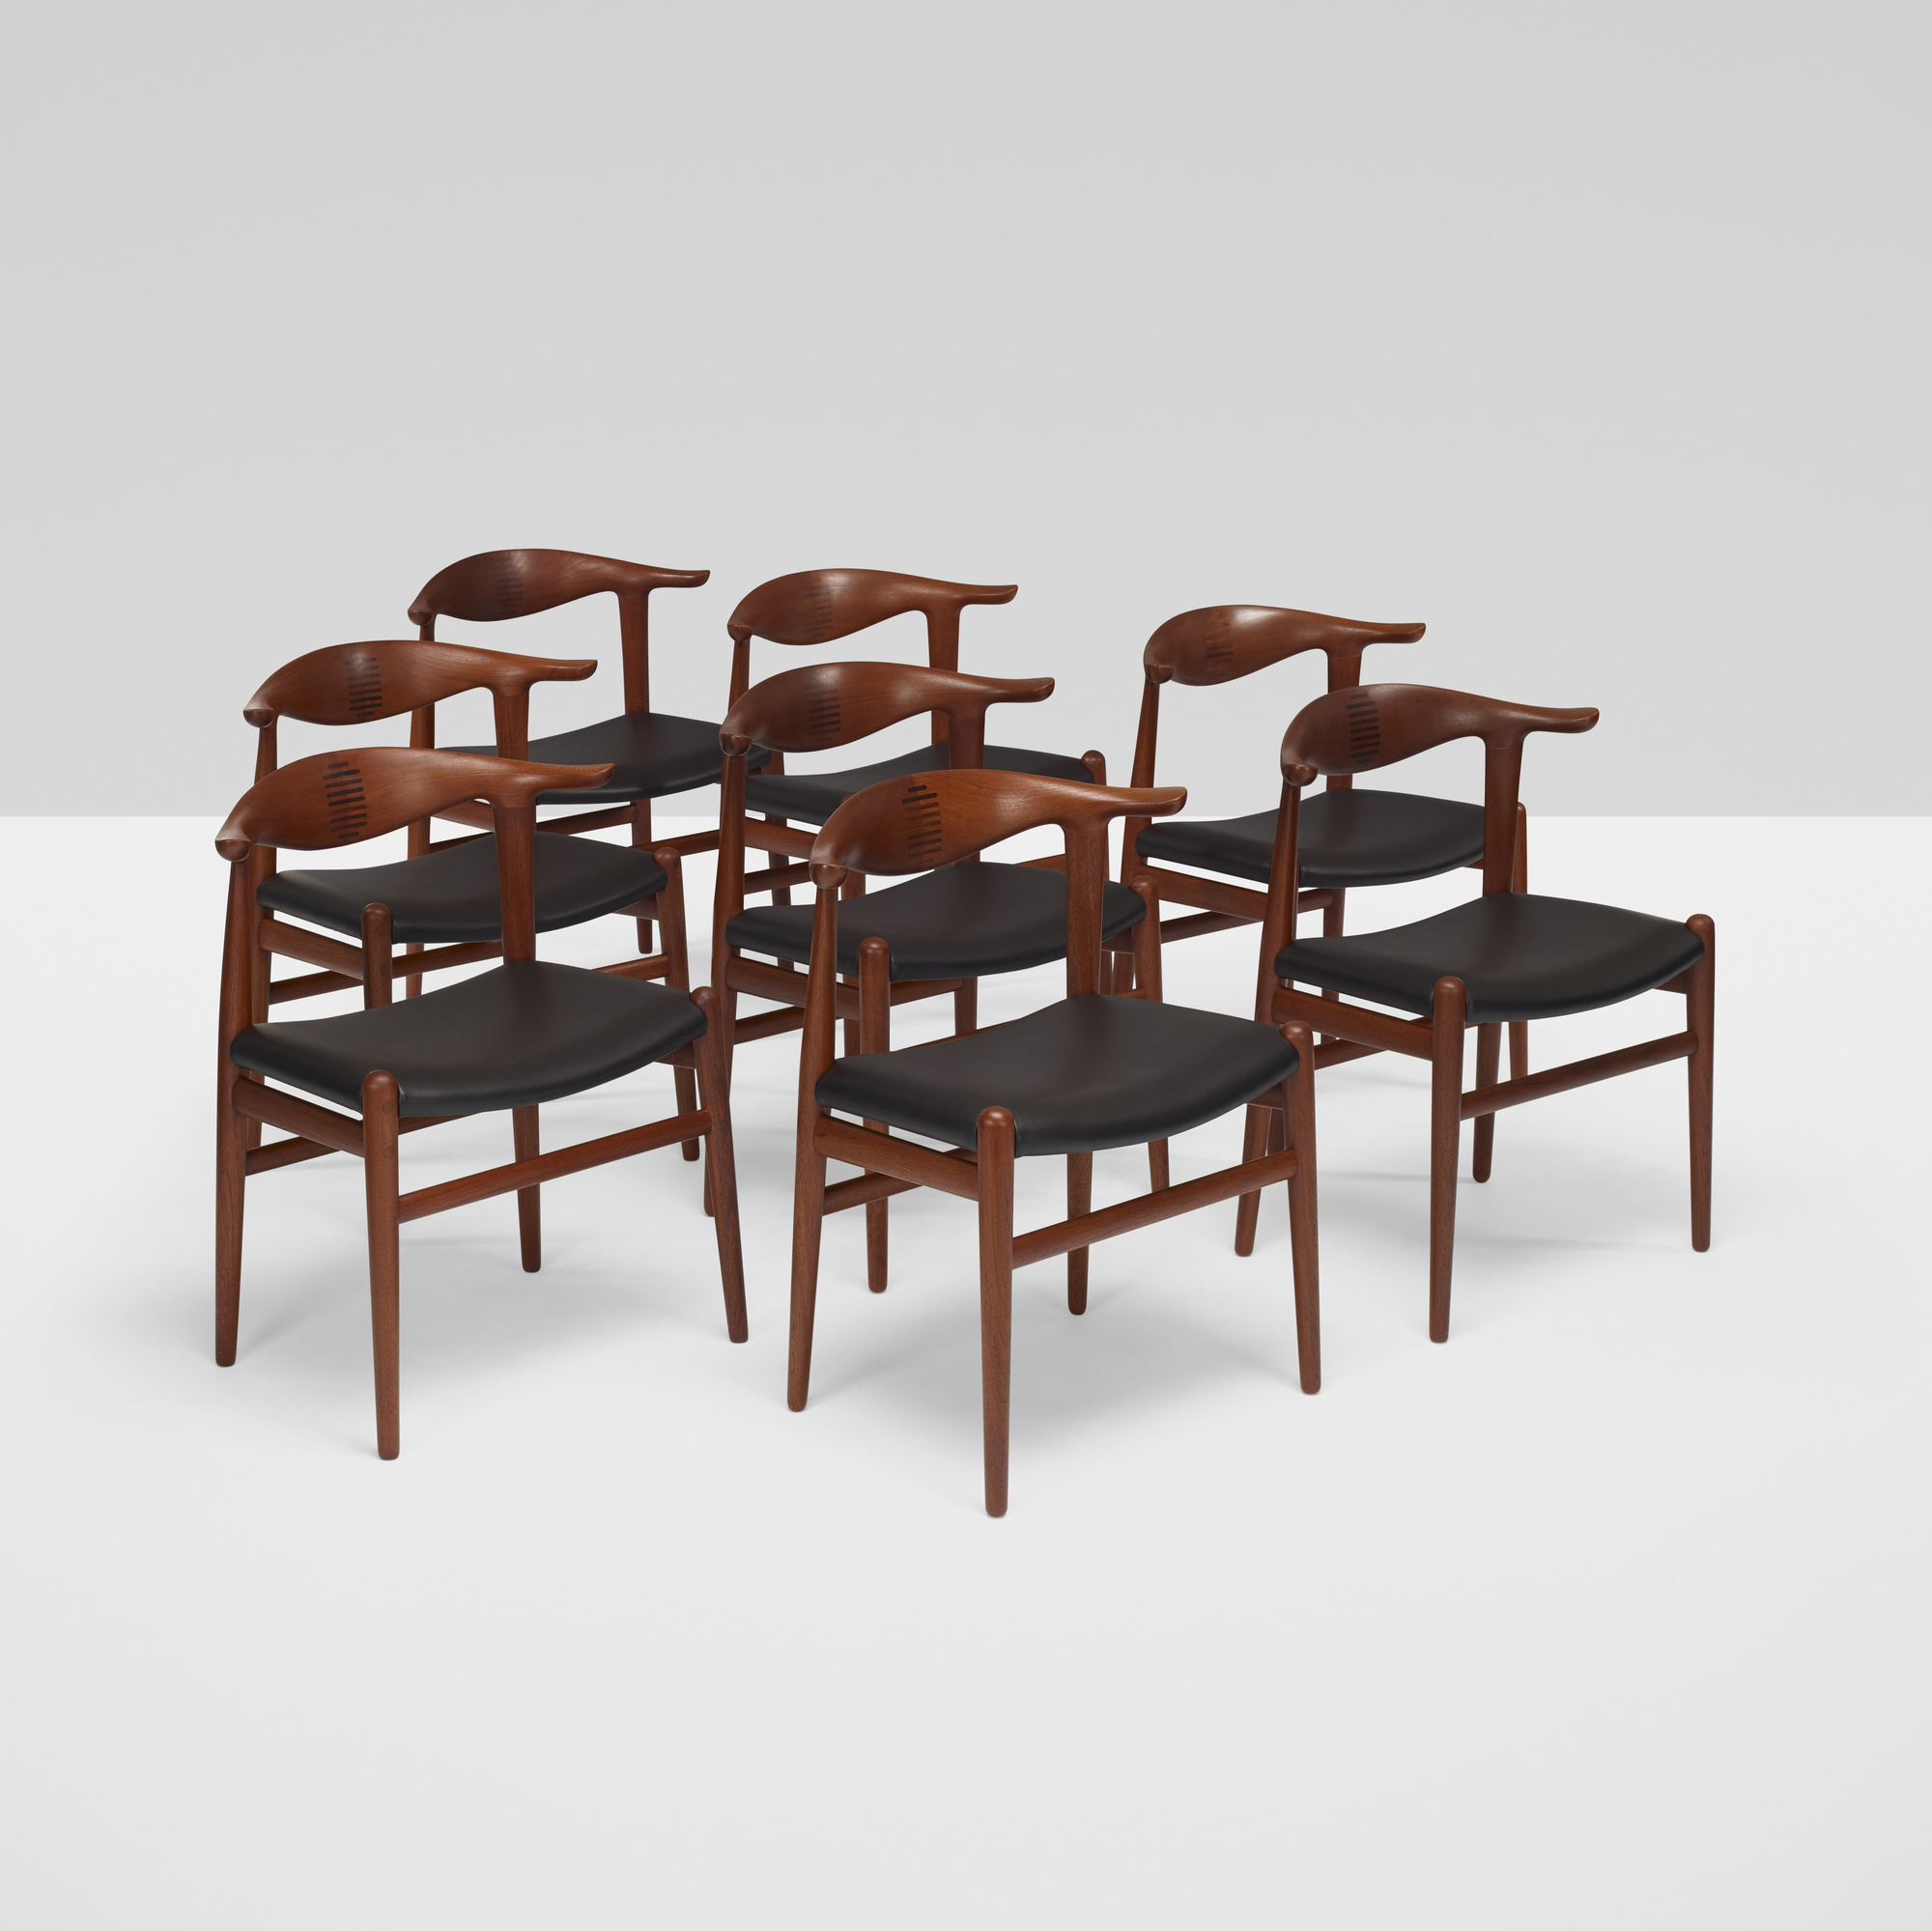 367: Hans J. Wegner / Cow Horn chairs, set of eight (1 of 7)